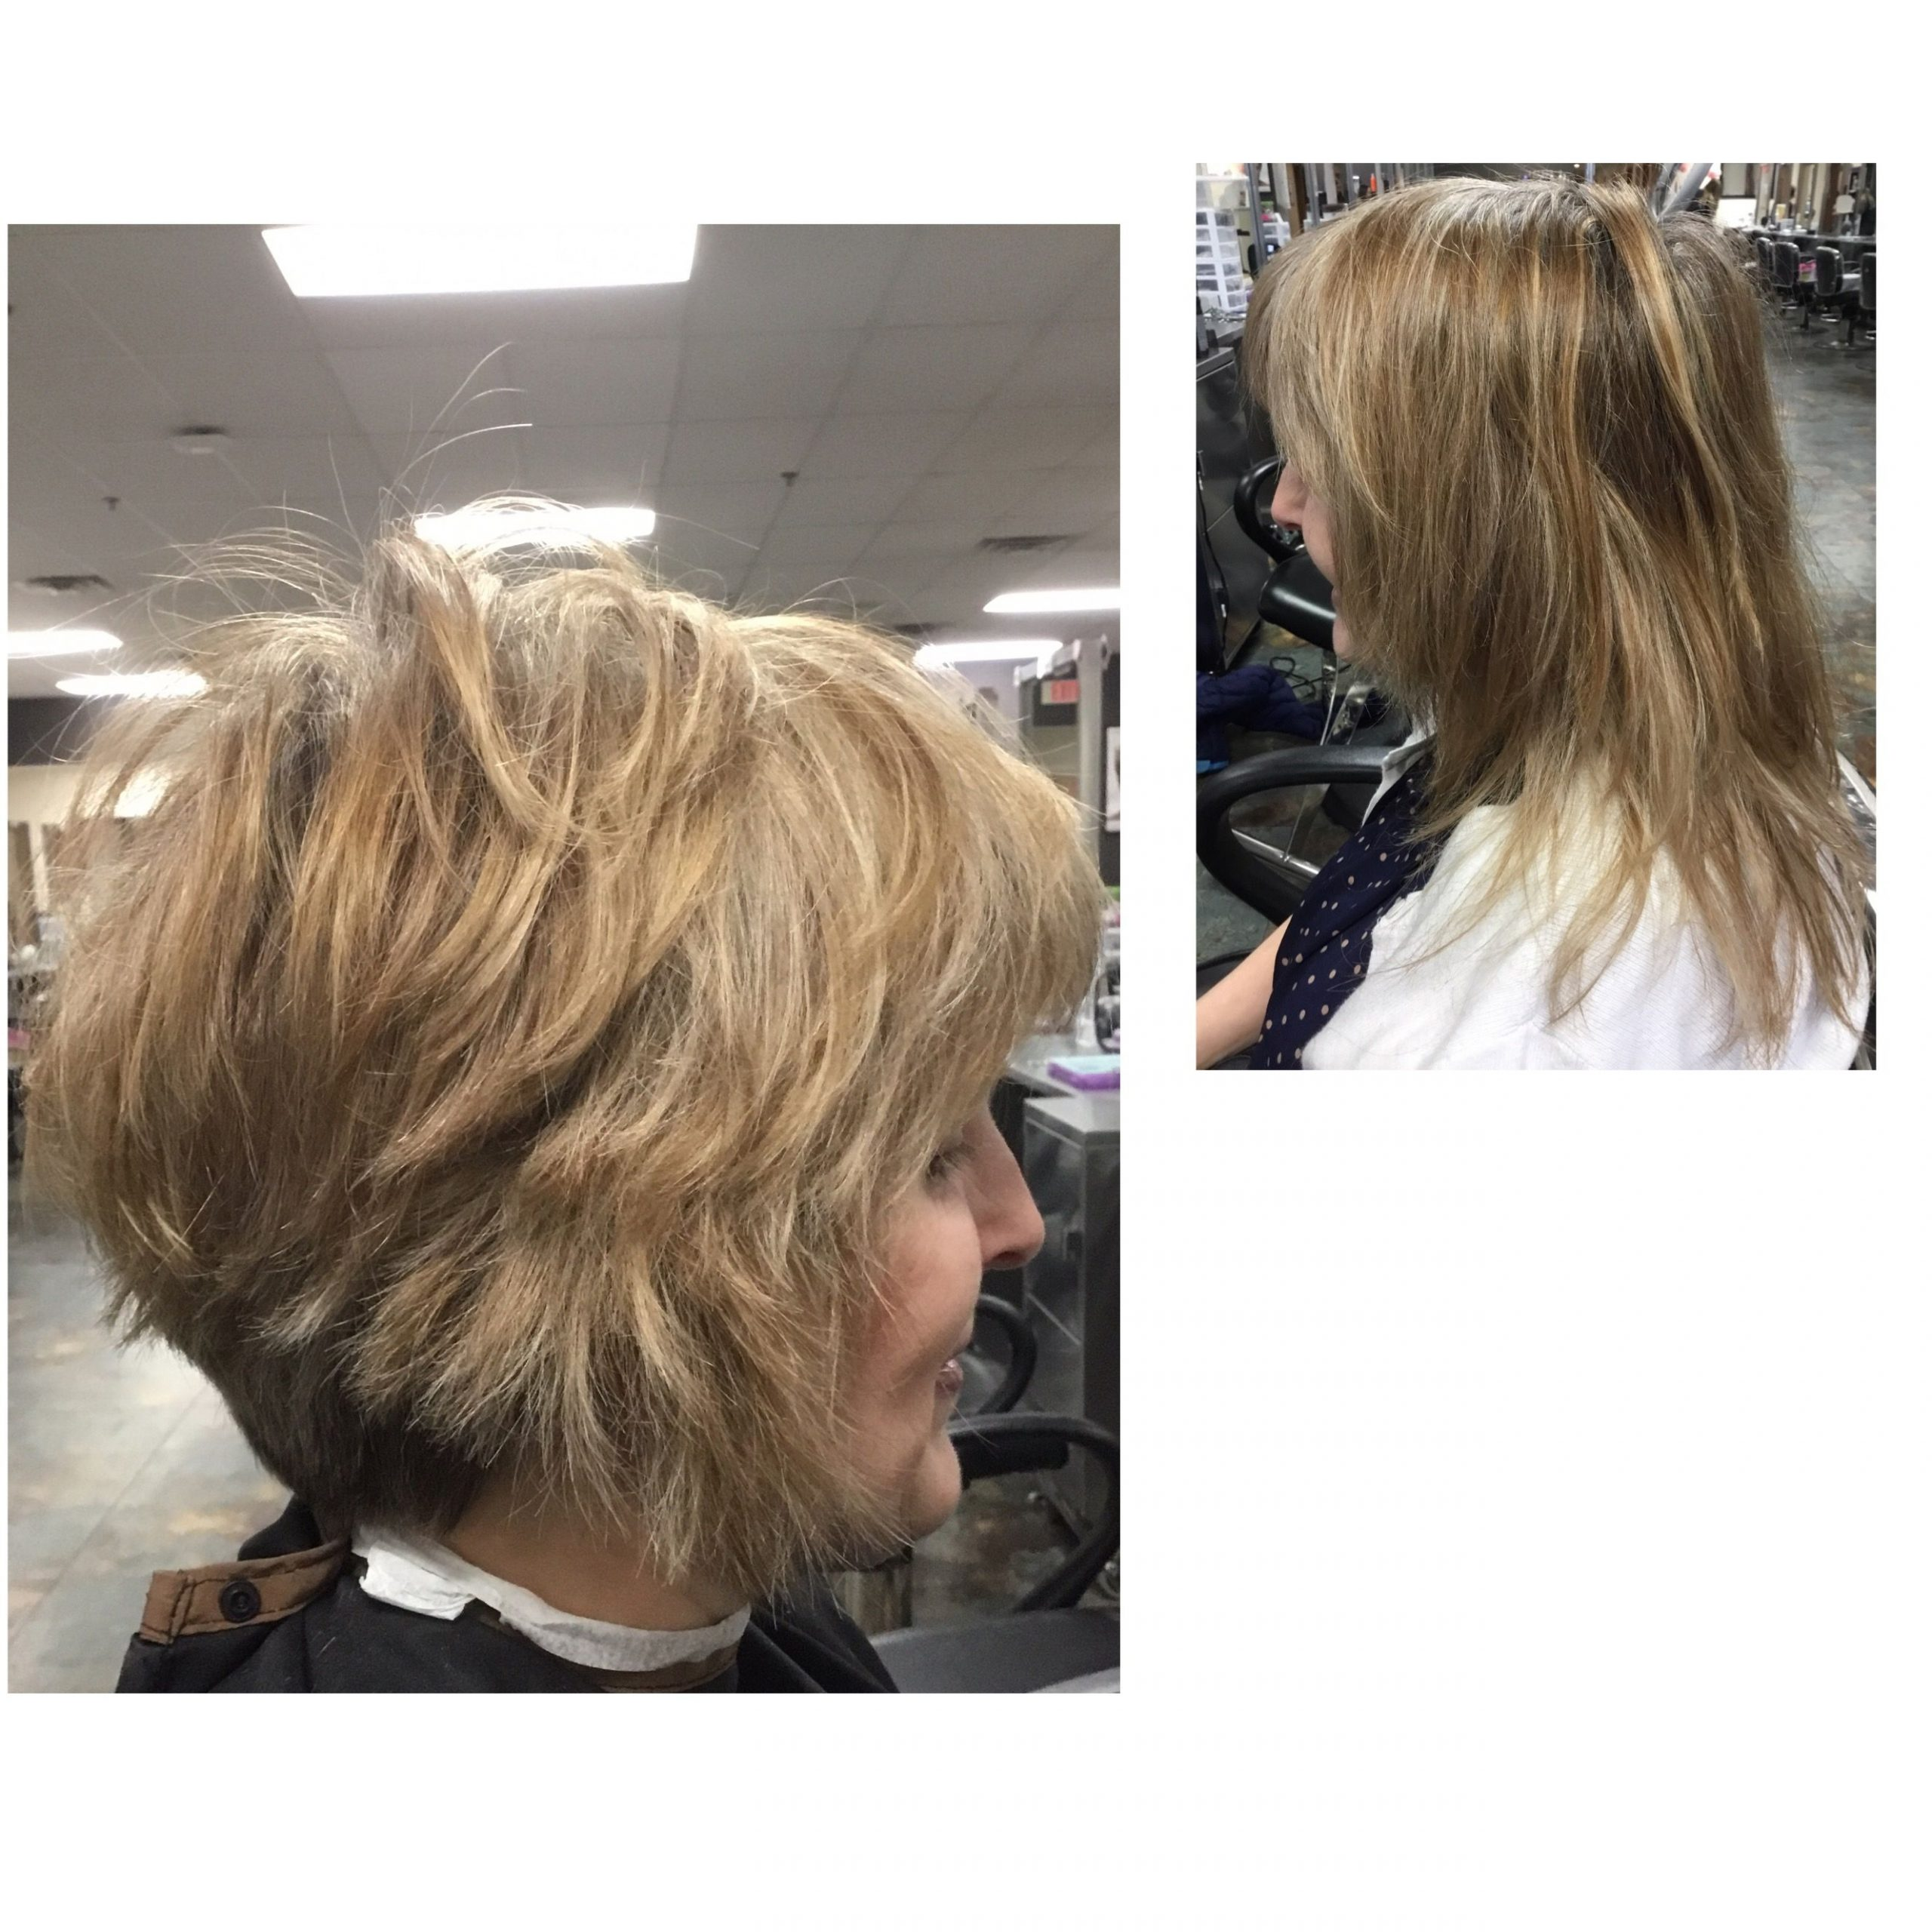 2017 Textured And Layered Graduated Bob Hairstyles Inside Pin On Women's Haircuts (View 1 of 20)